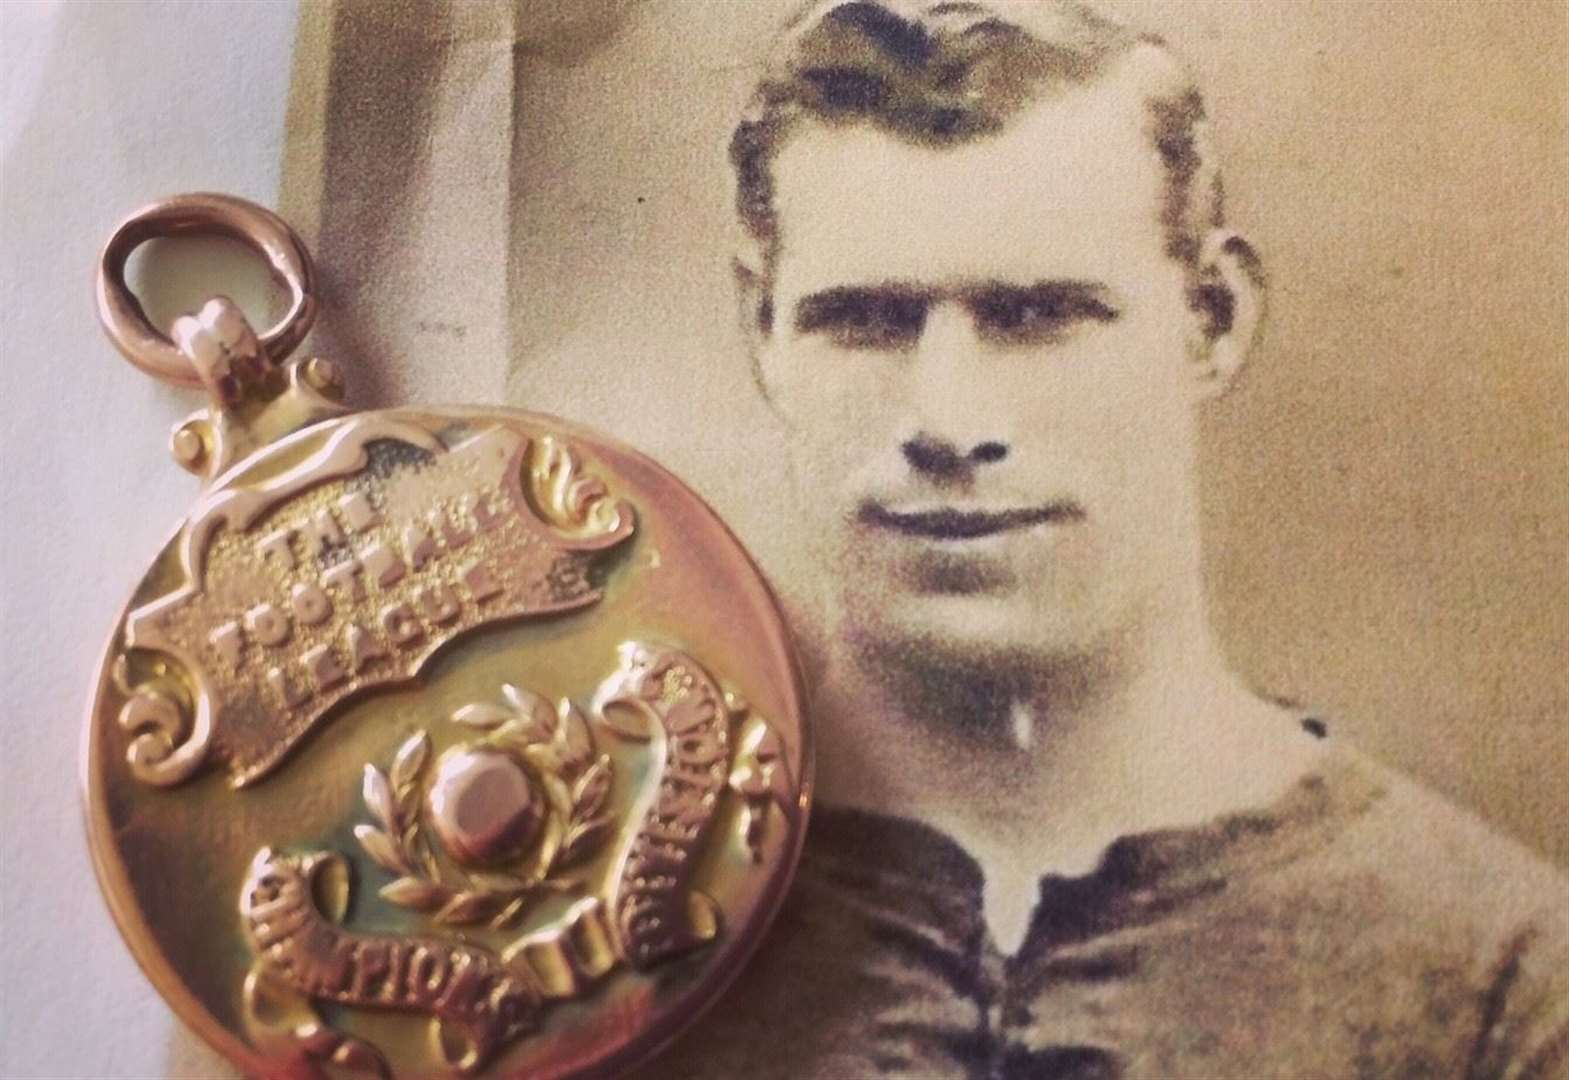 Notts County title winning medal to be auctioned